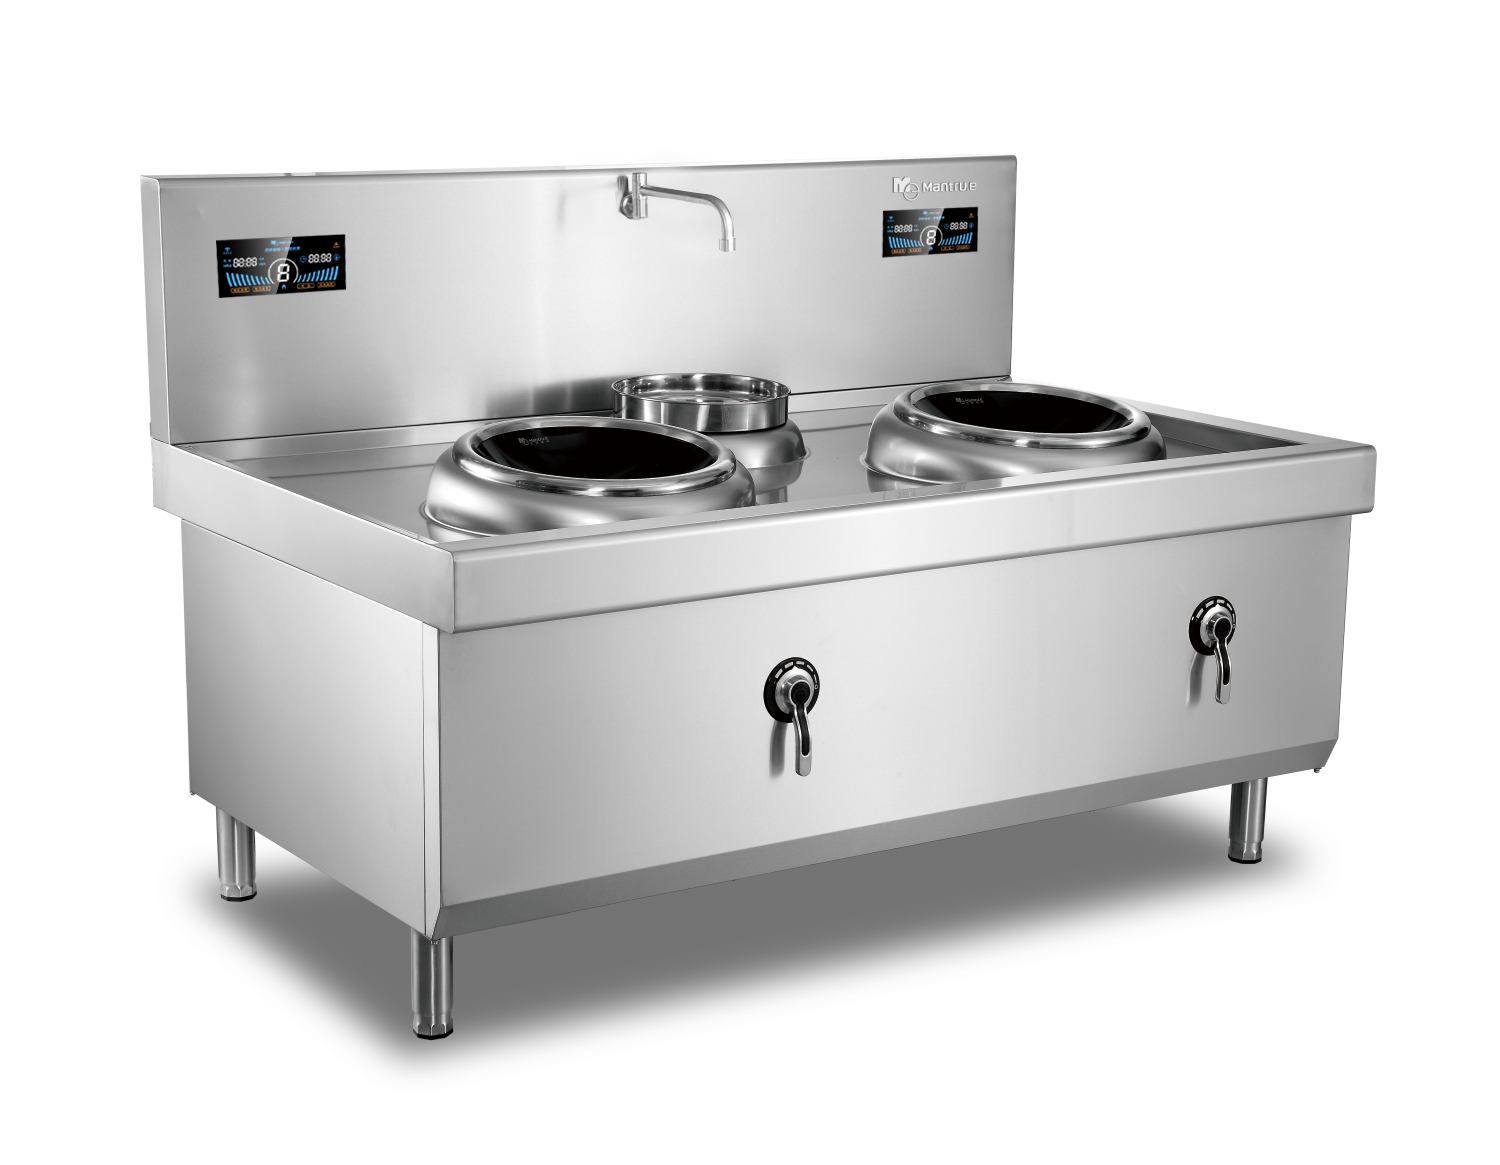 500mm Double Burner with one basin Induction Wok